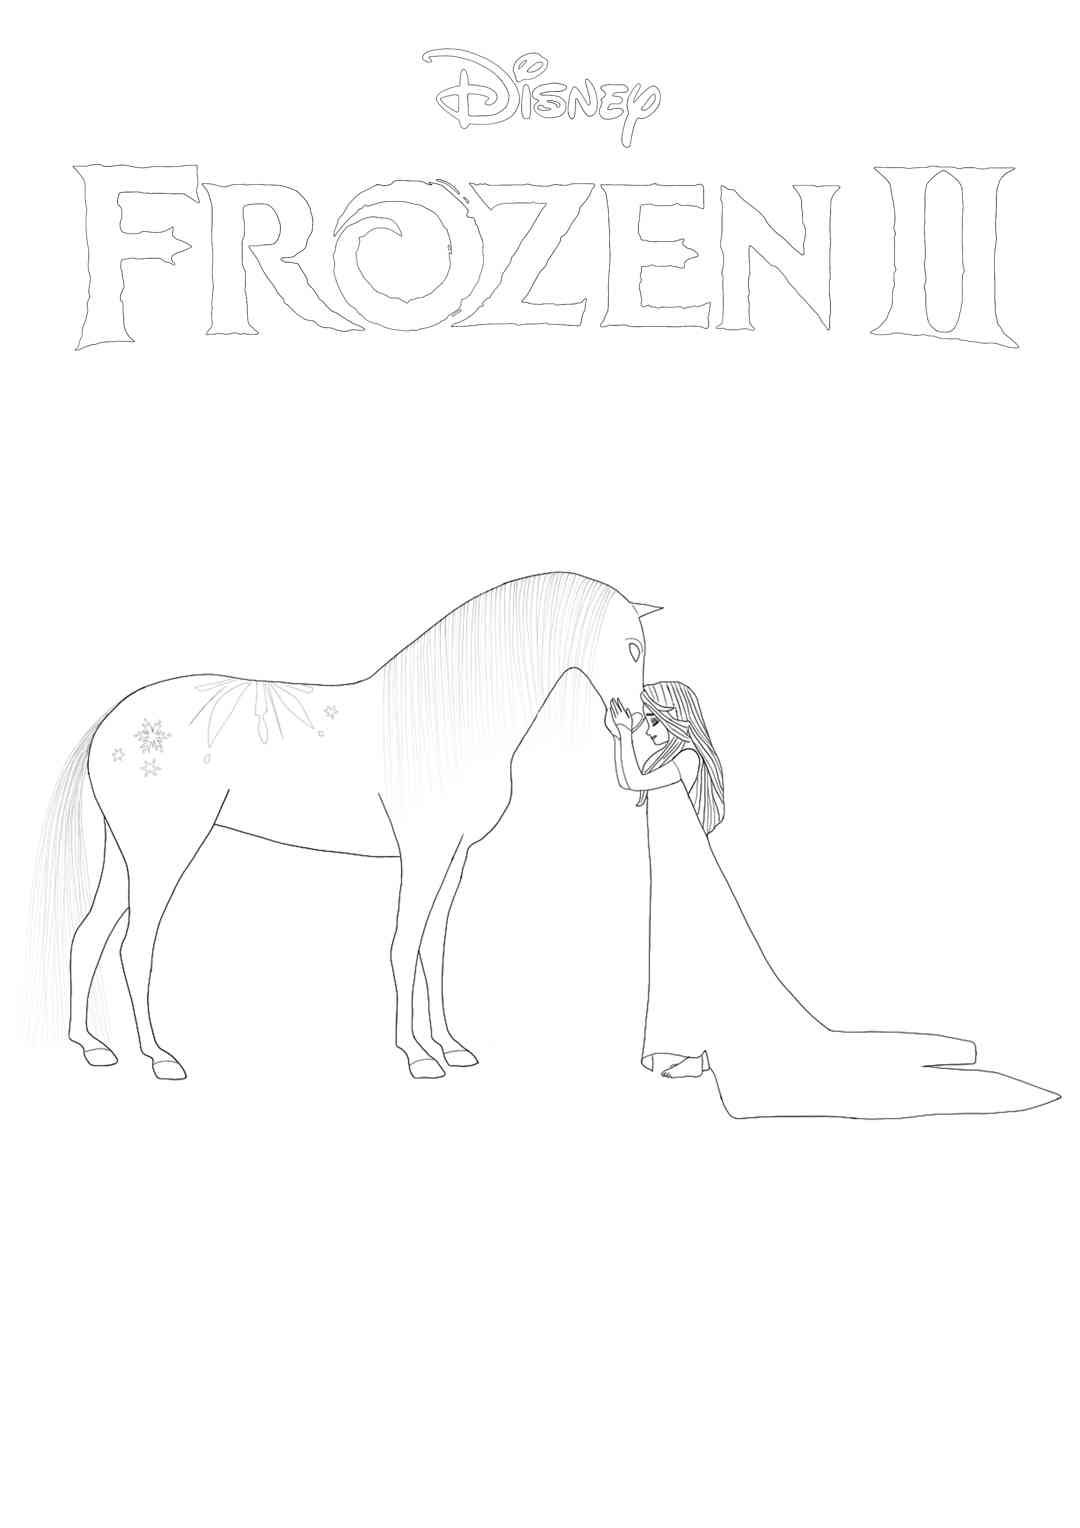 Free Frozen 2 Elsa And Nokk Coloring Page Print Or Download Frozen Ii Coloring Pictures Printable In 2020 Elsa Coloring Pages Coloring Pages Frozen Coloring Pages